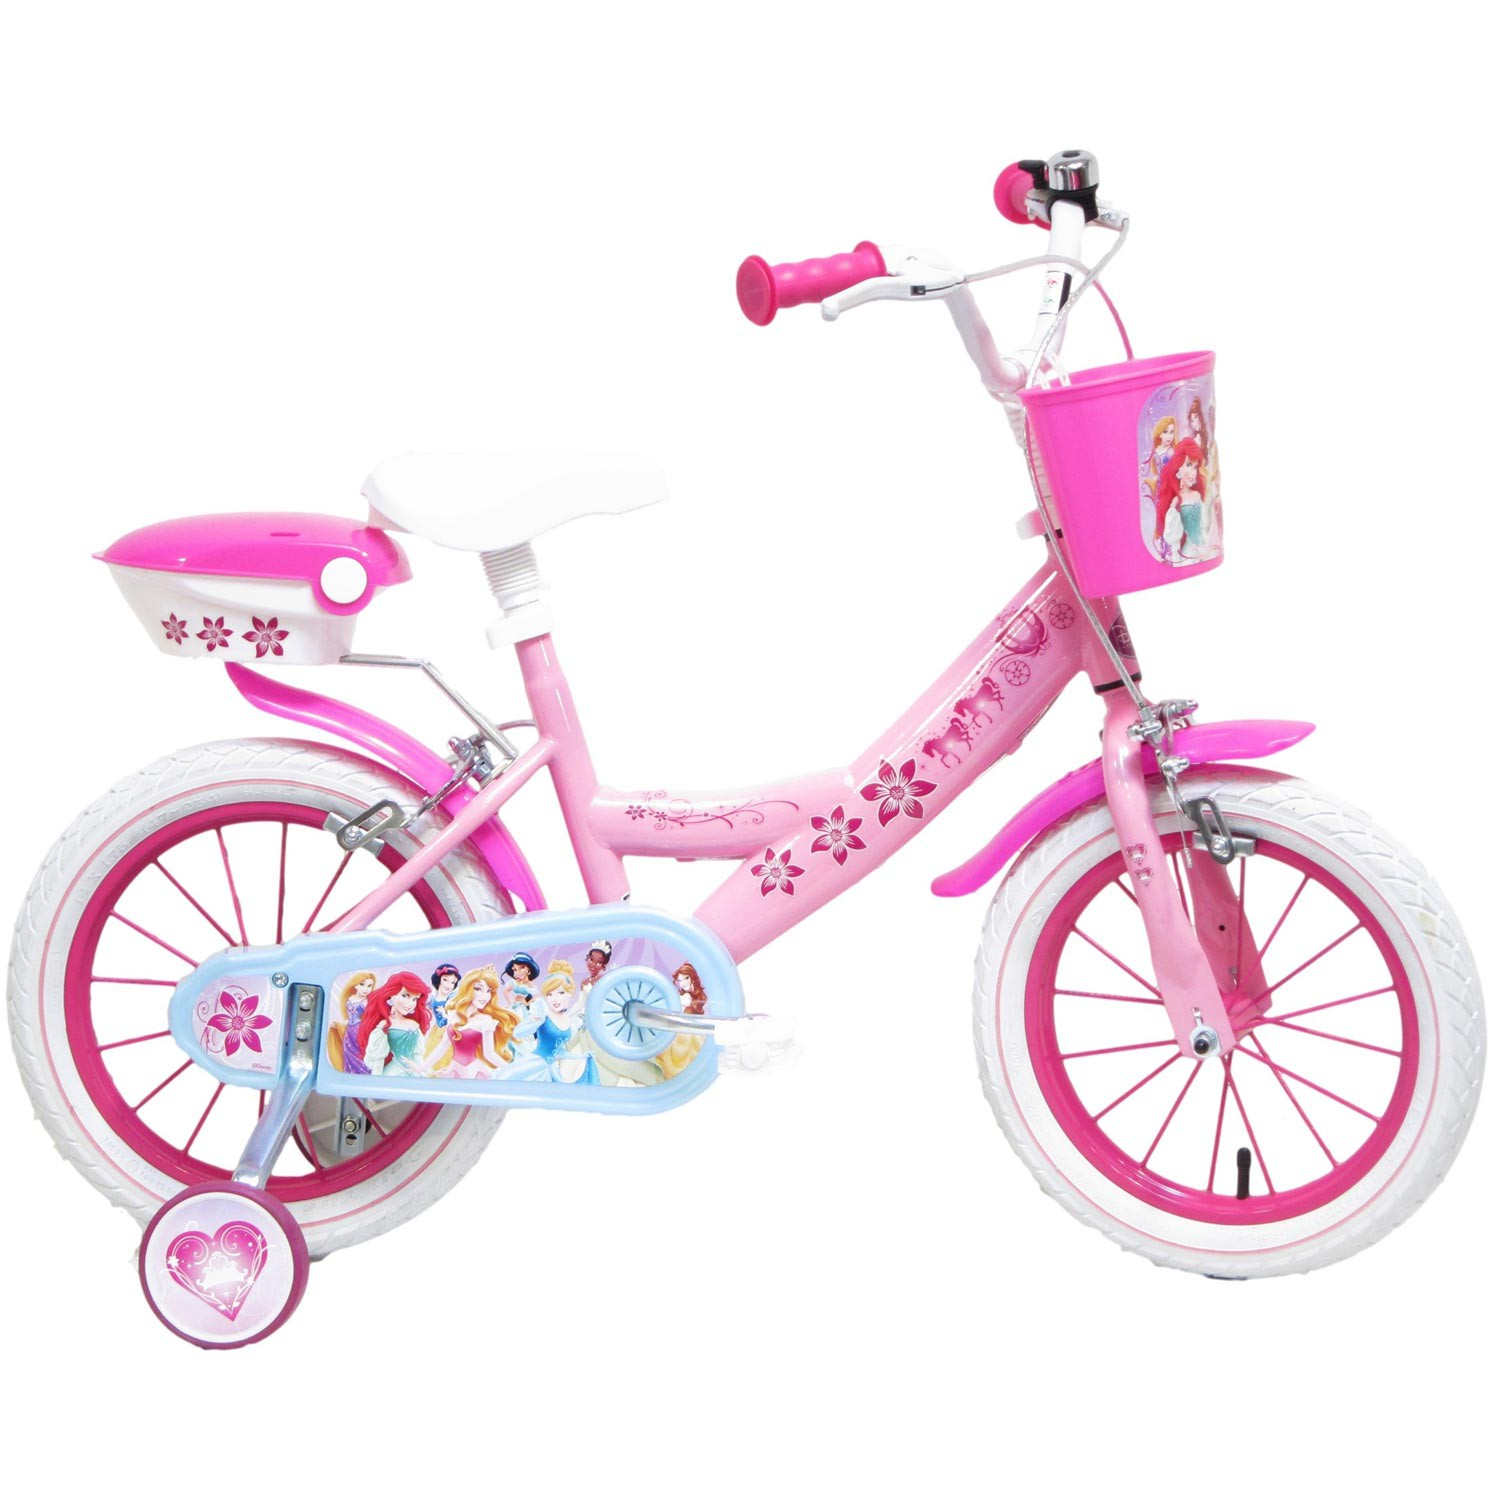 16 zoll disney princess kinderfahrrad anf nger fahrrad. Black Bedroom Furniture Sets. Home Design Ideas